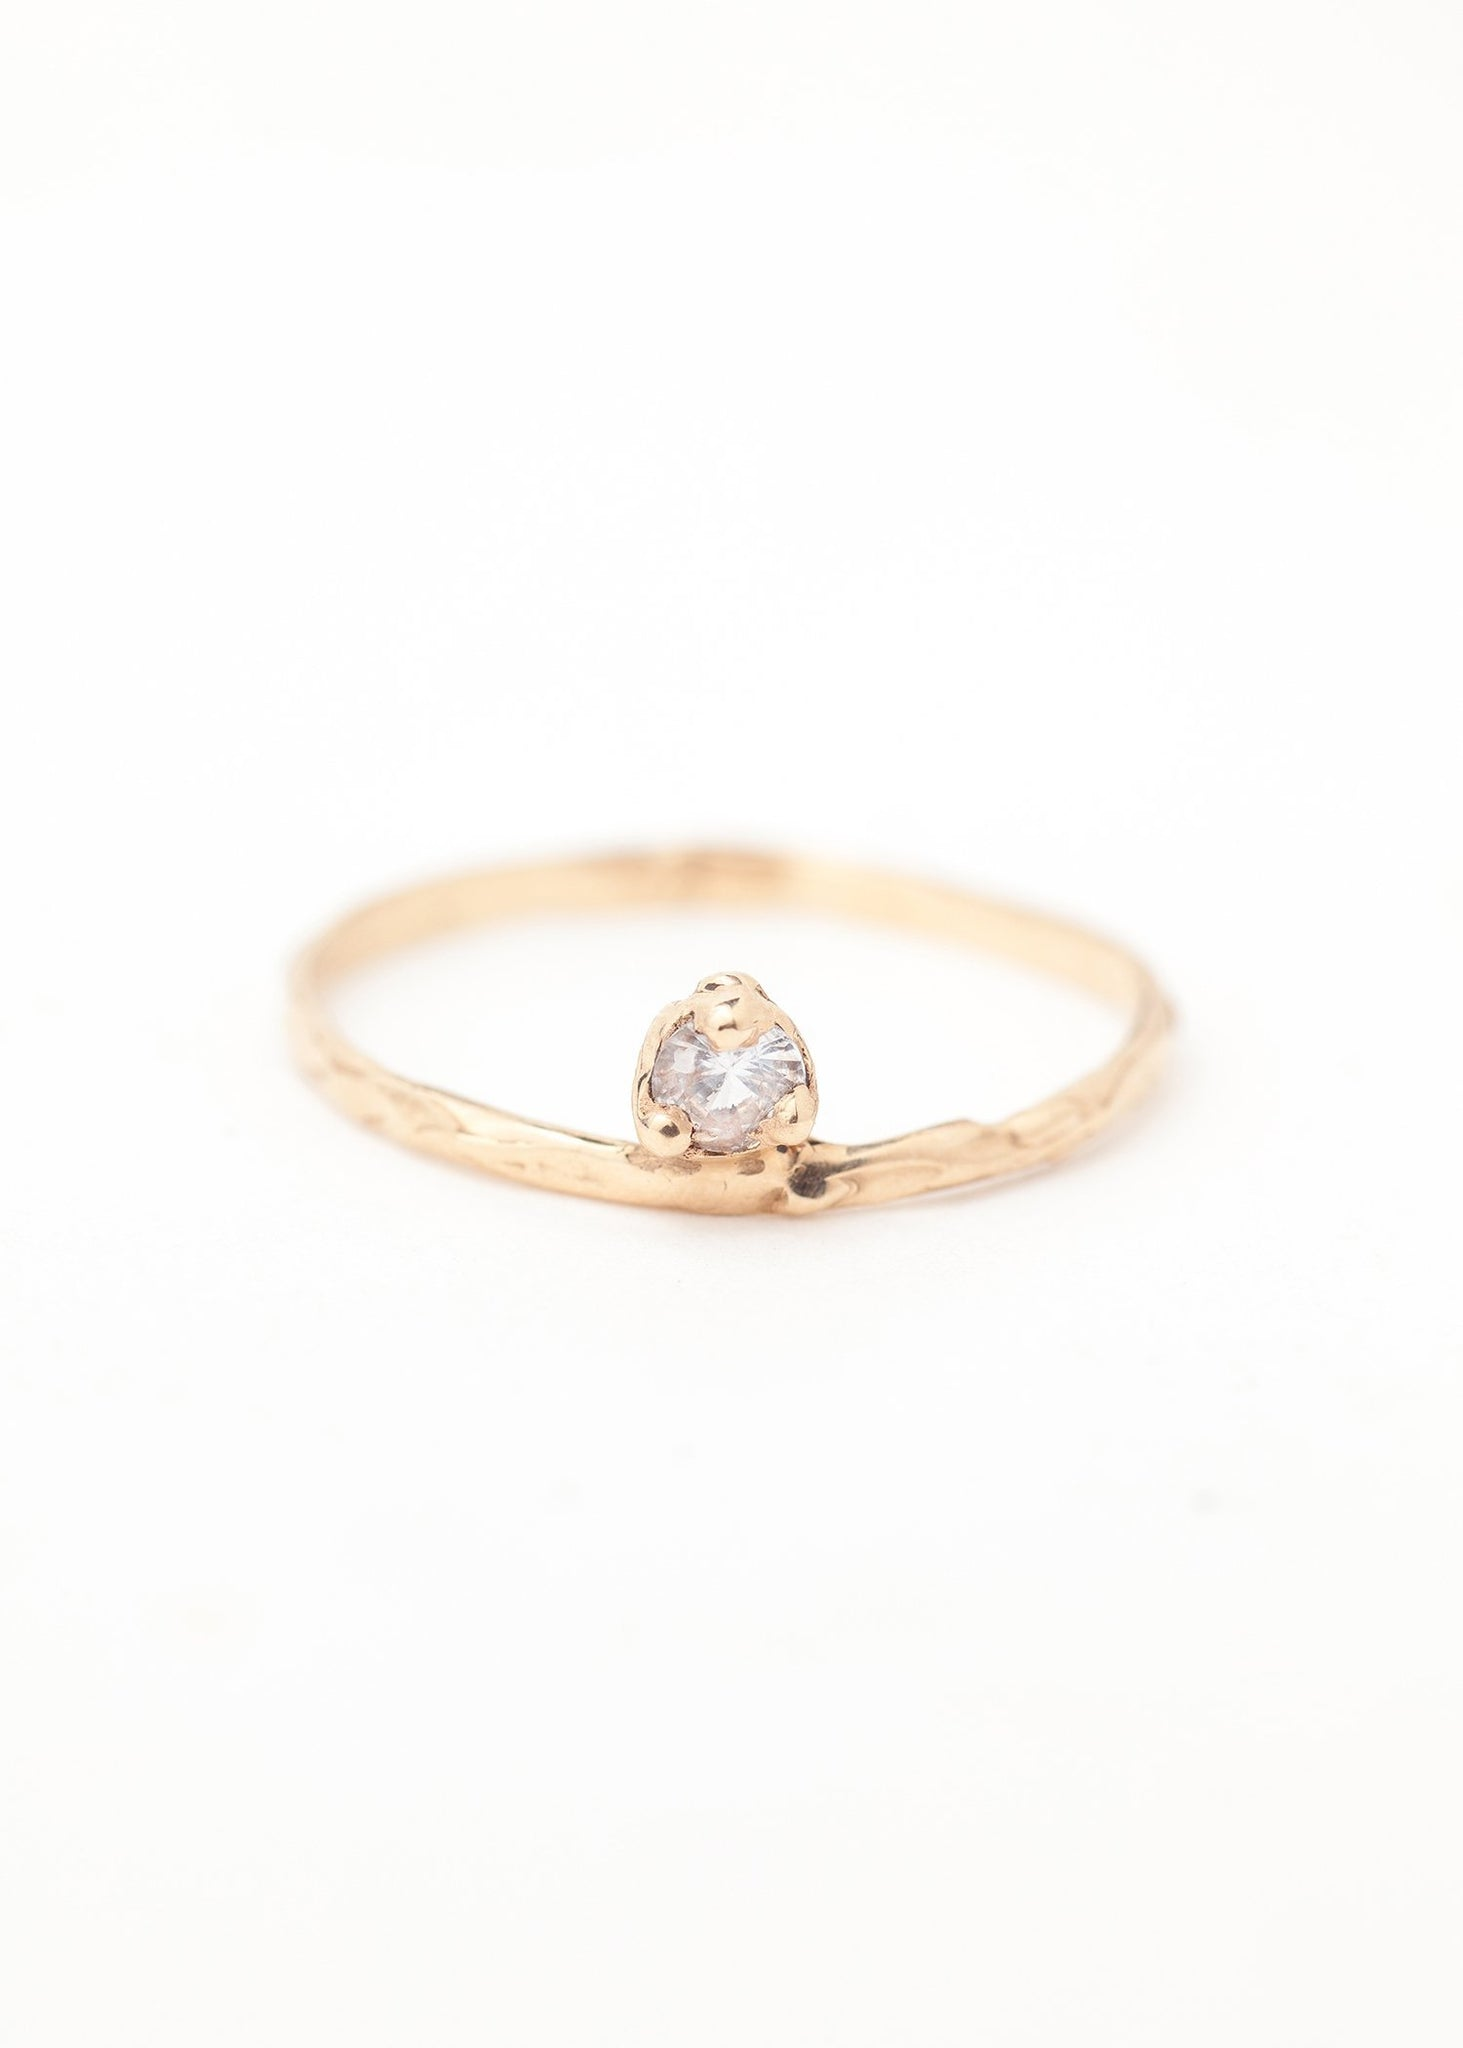 Stella Suspended Solitaire Ring - 14K Gold